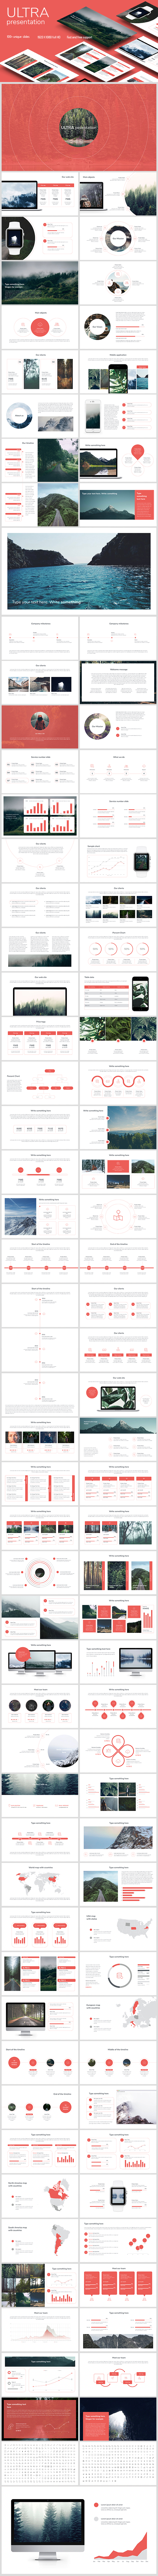 Clean Keynote Template - Keynote Templates Presentation Templates